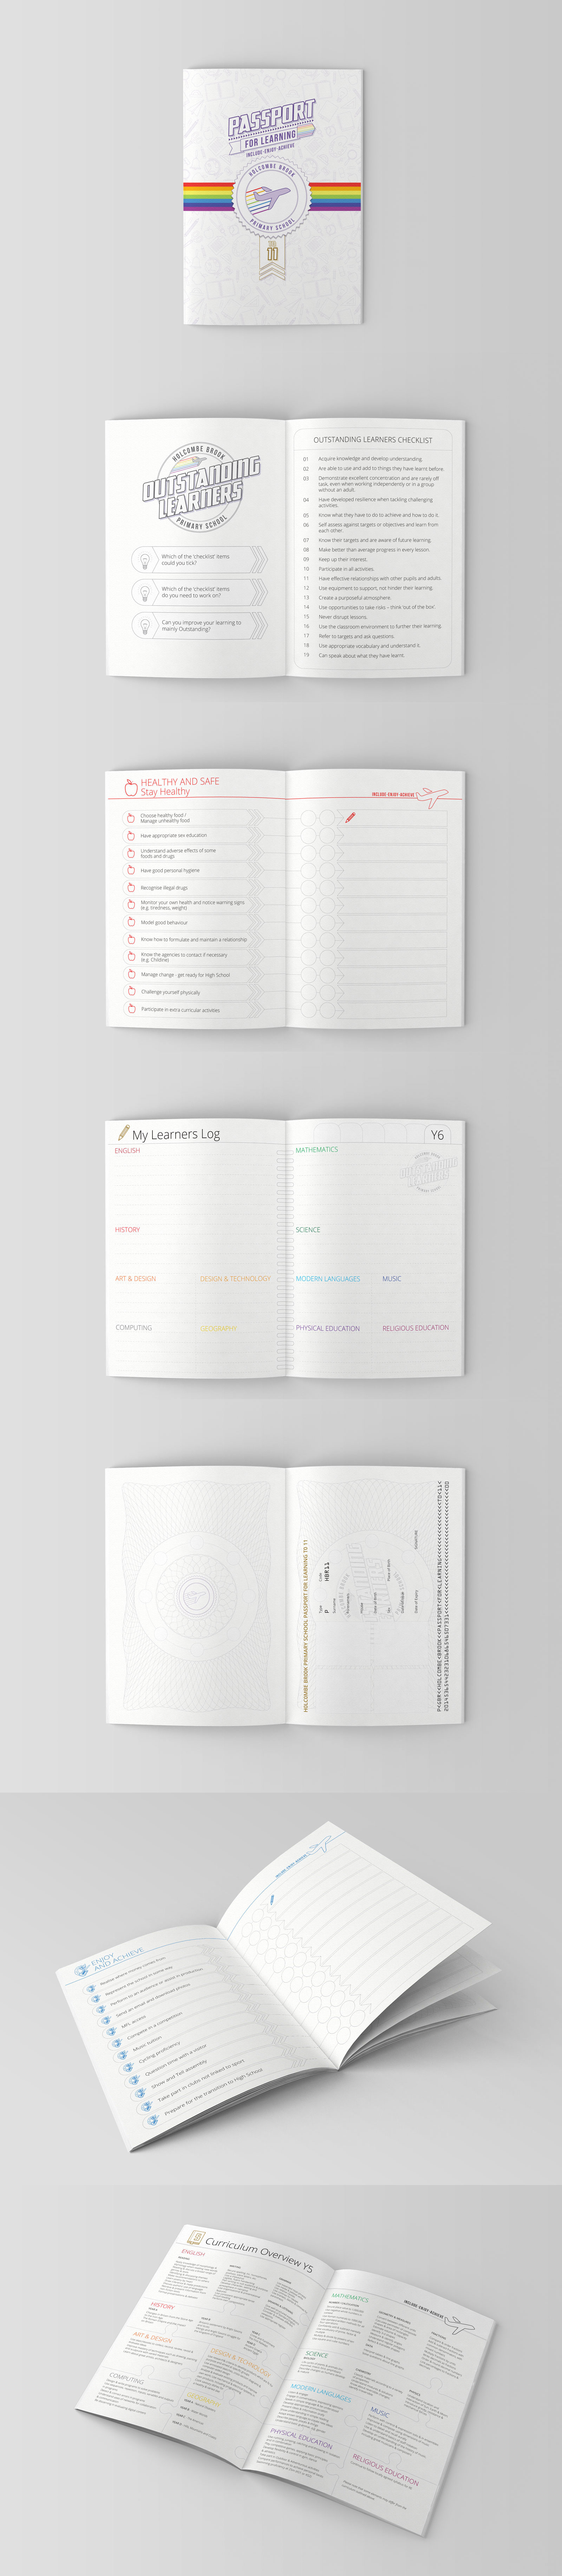 Passport For Learning - Primary School Guide Booklet Graphic Design Overview